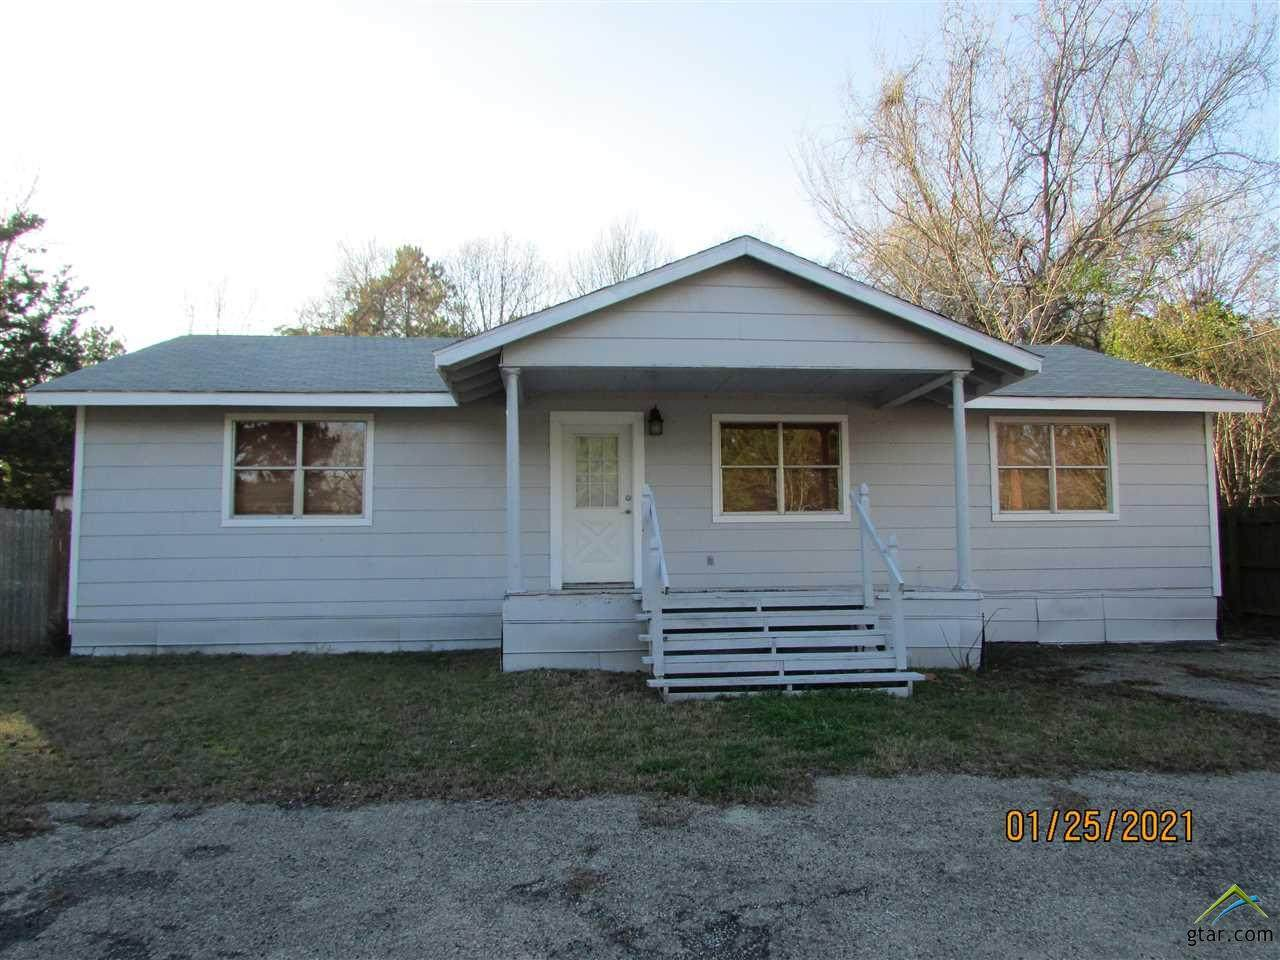 7616 Valley View - Photo 1